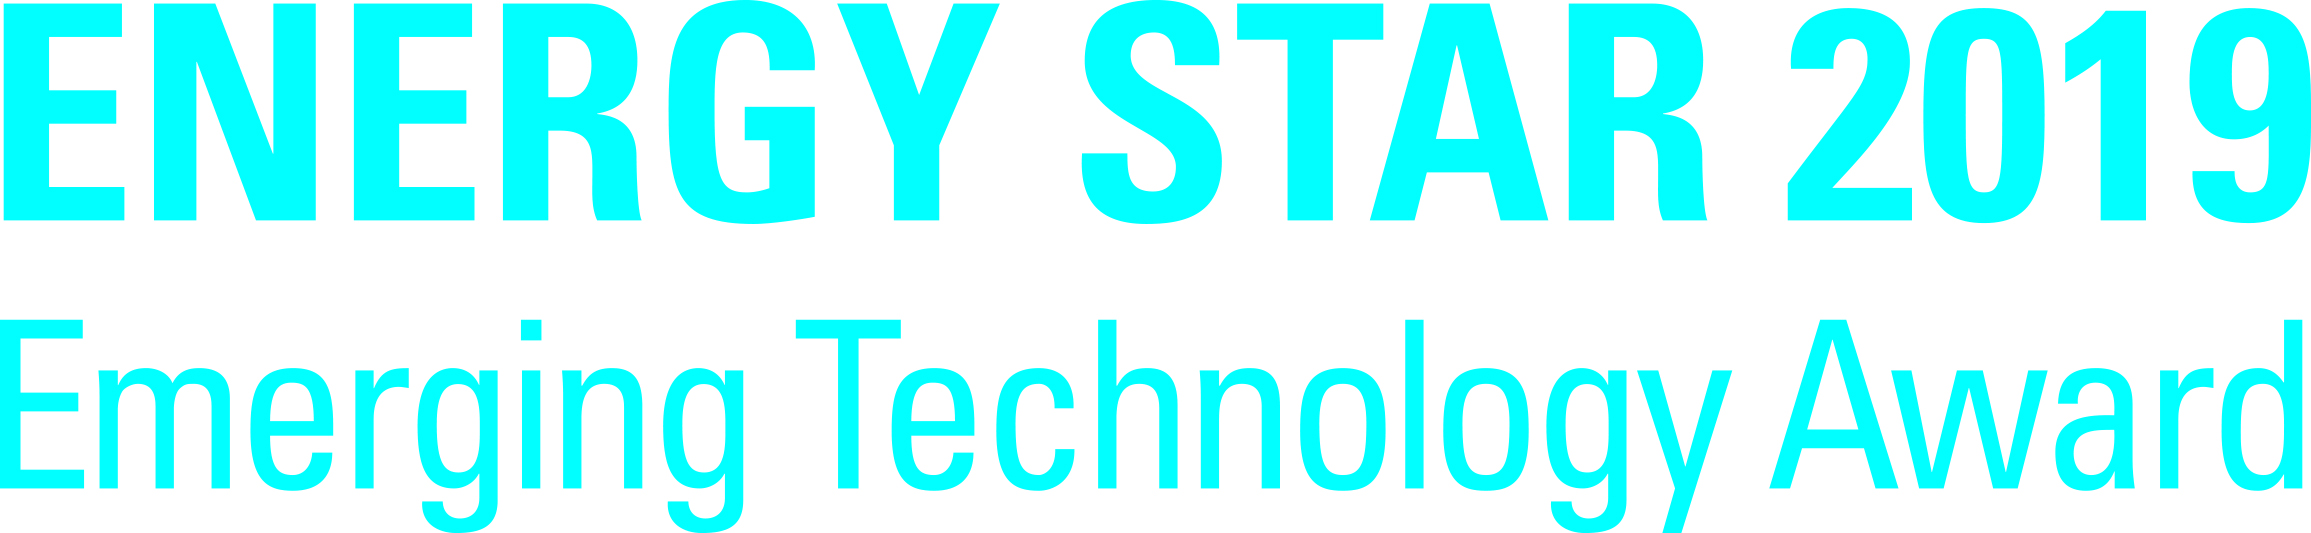 Energy Star 2019 Emerging Technology Ward on white background